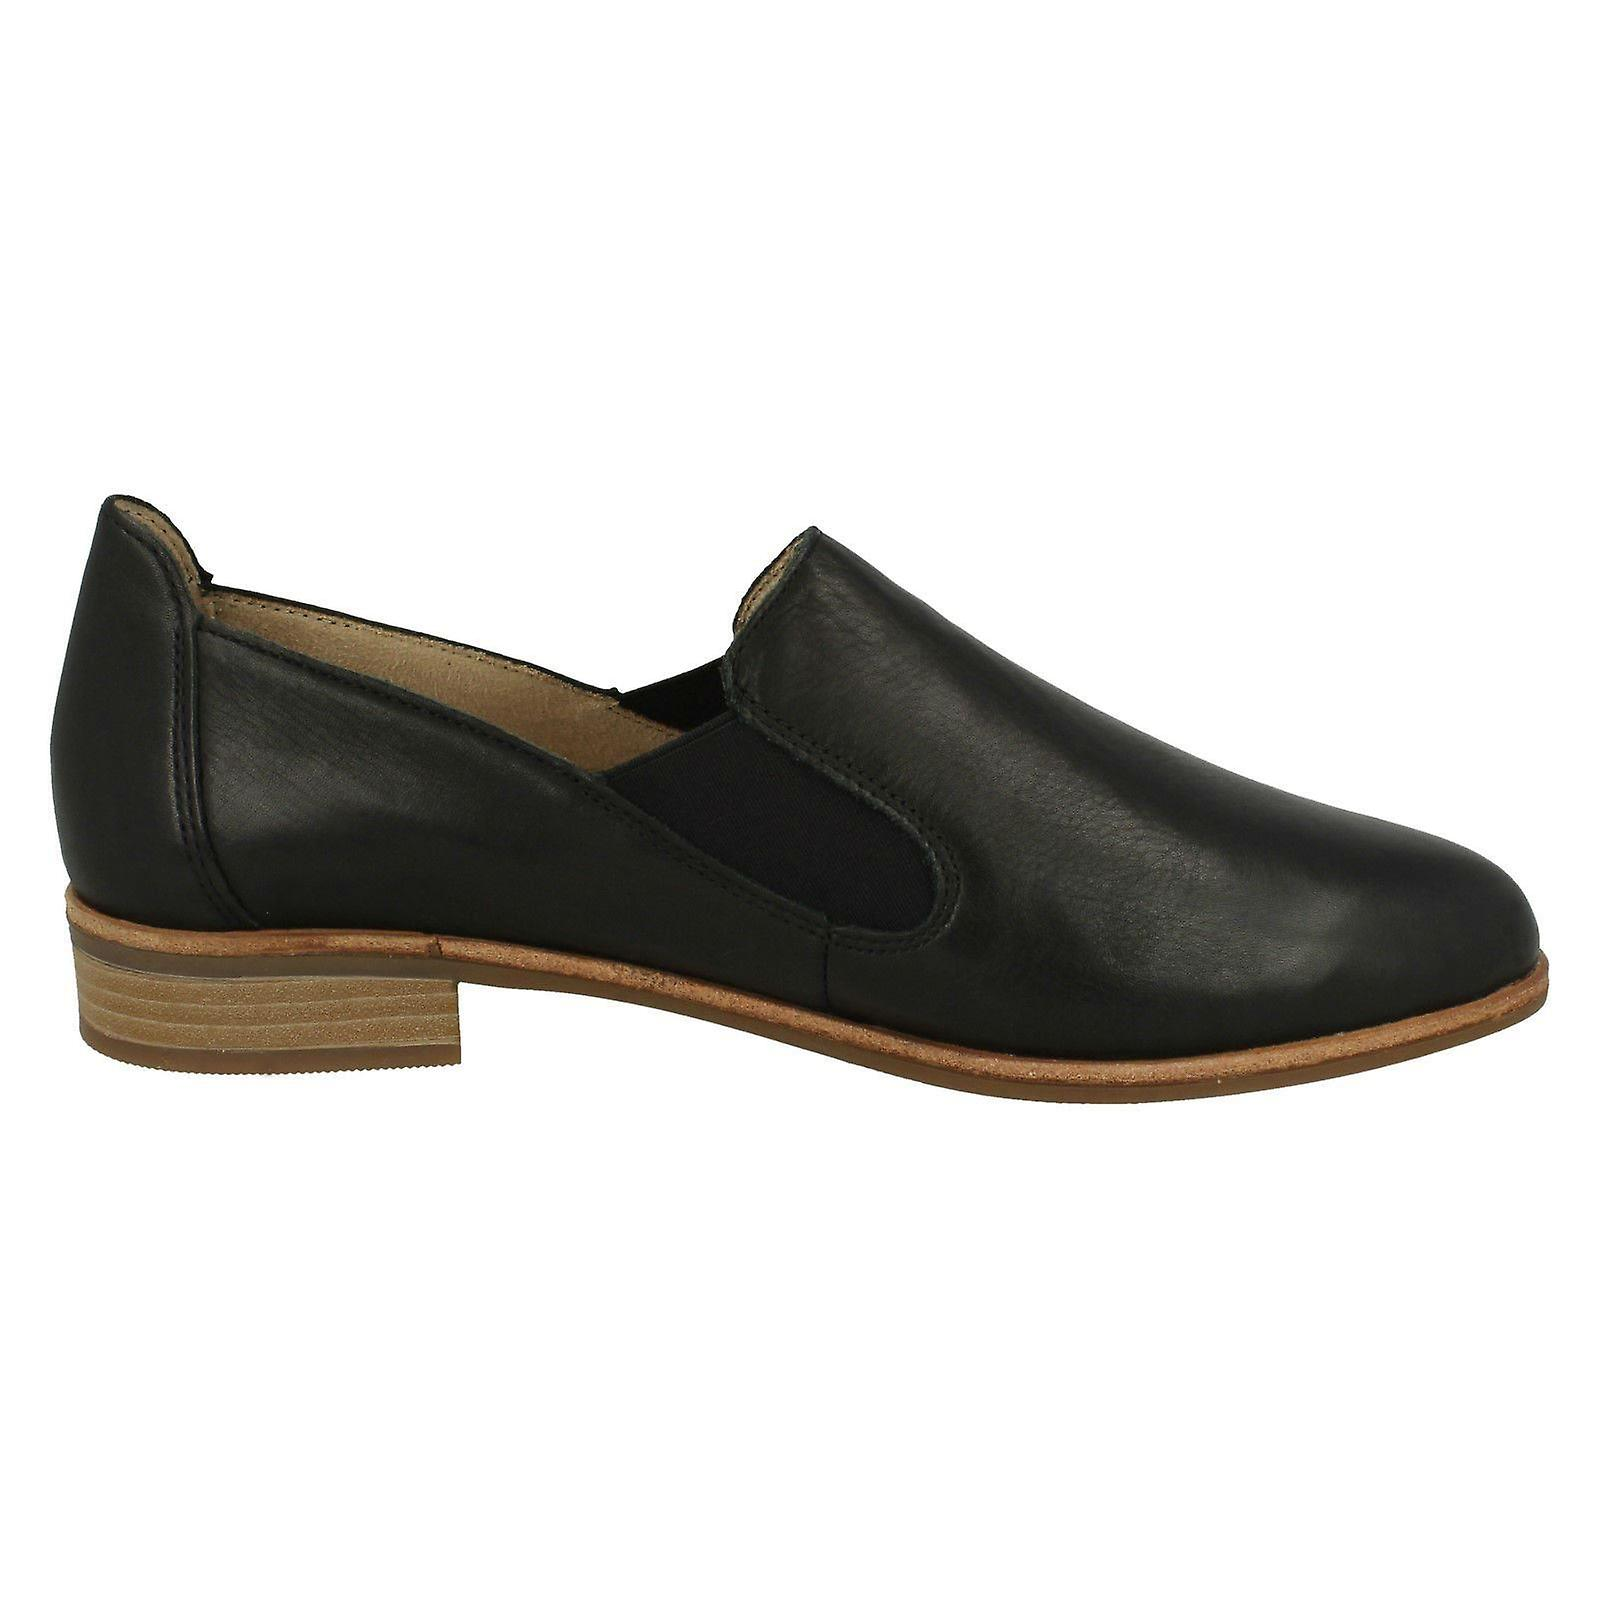 Mesdames Remonte Loafer Style Chaussures R2800